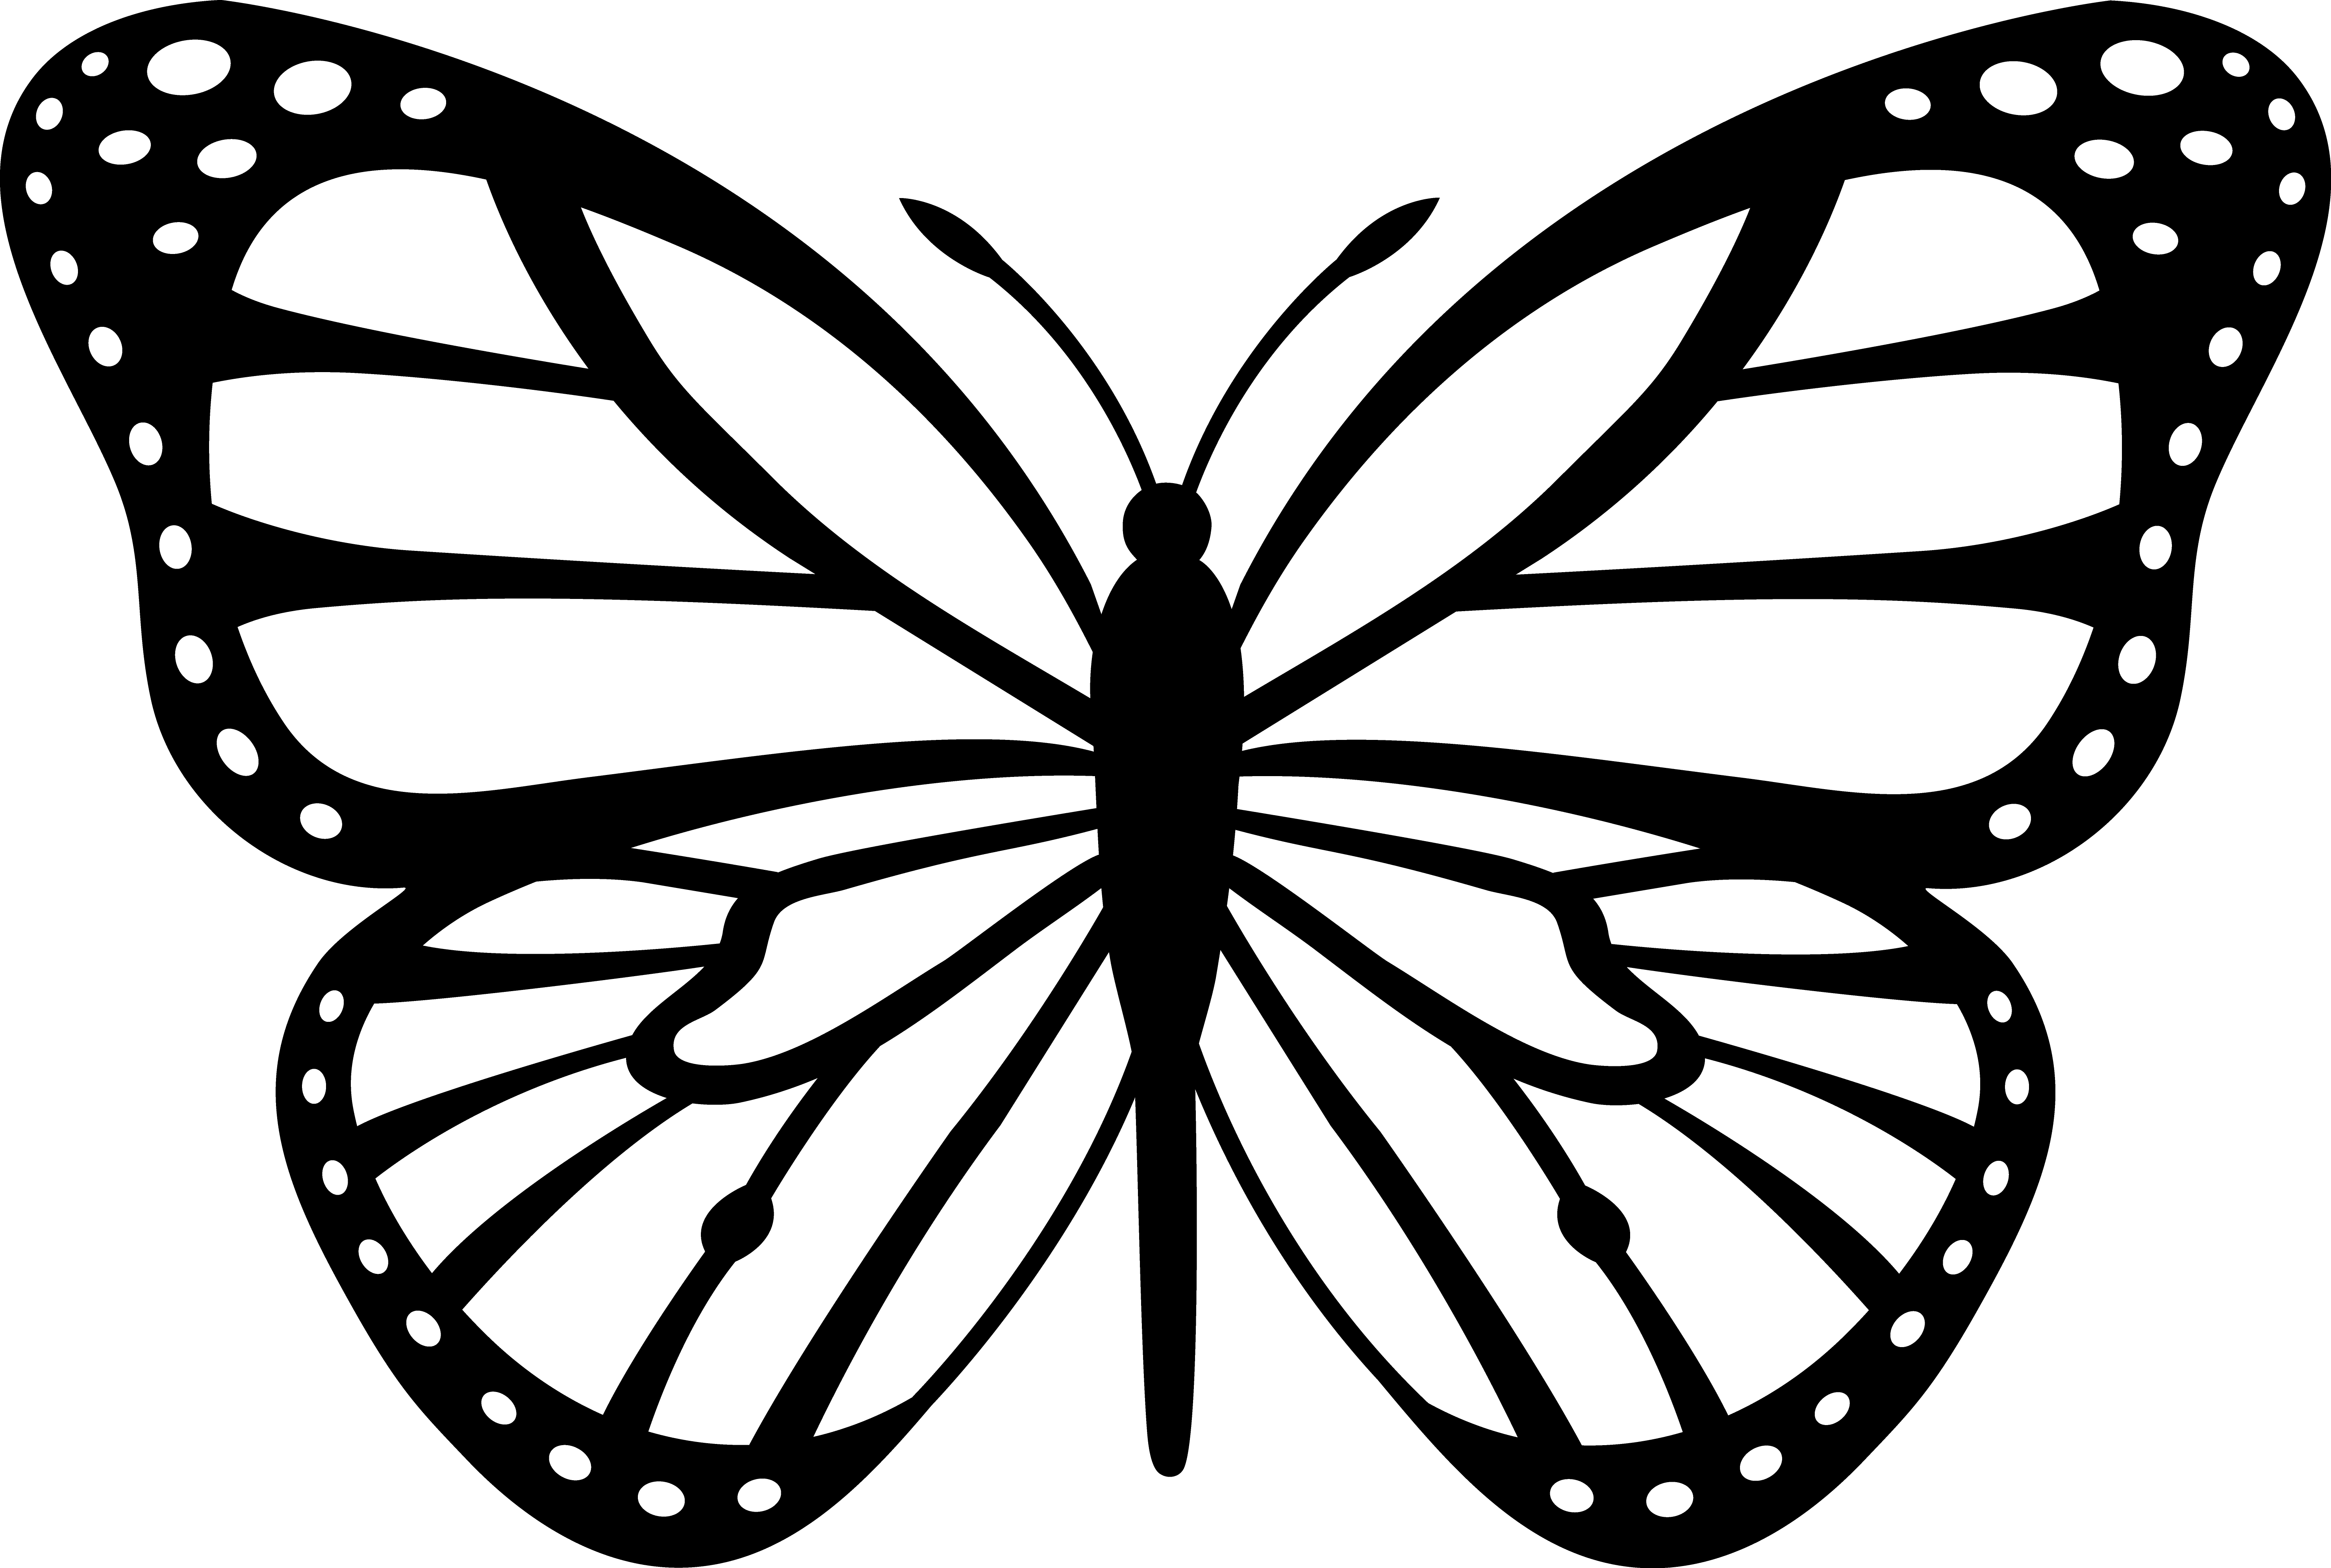 butterfly clipart to color butterfly outline clip art jos gandos coloring pages for clipart butterfly to color